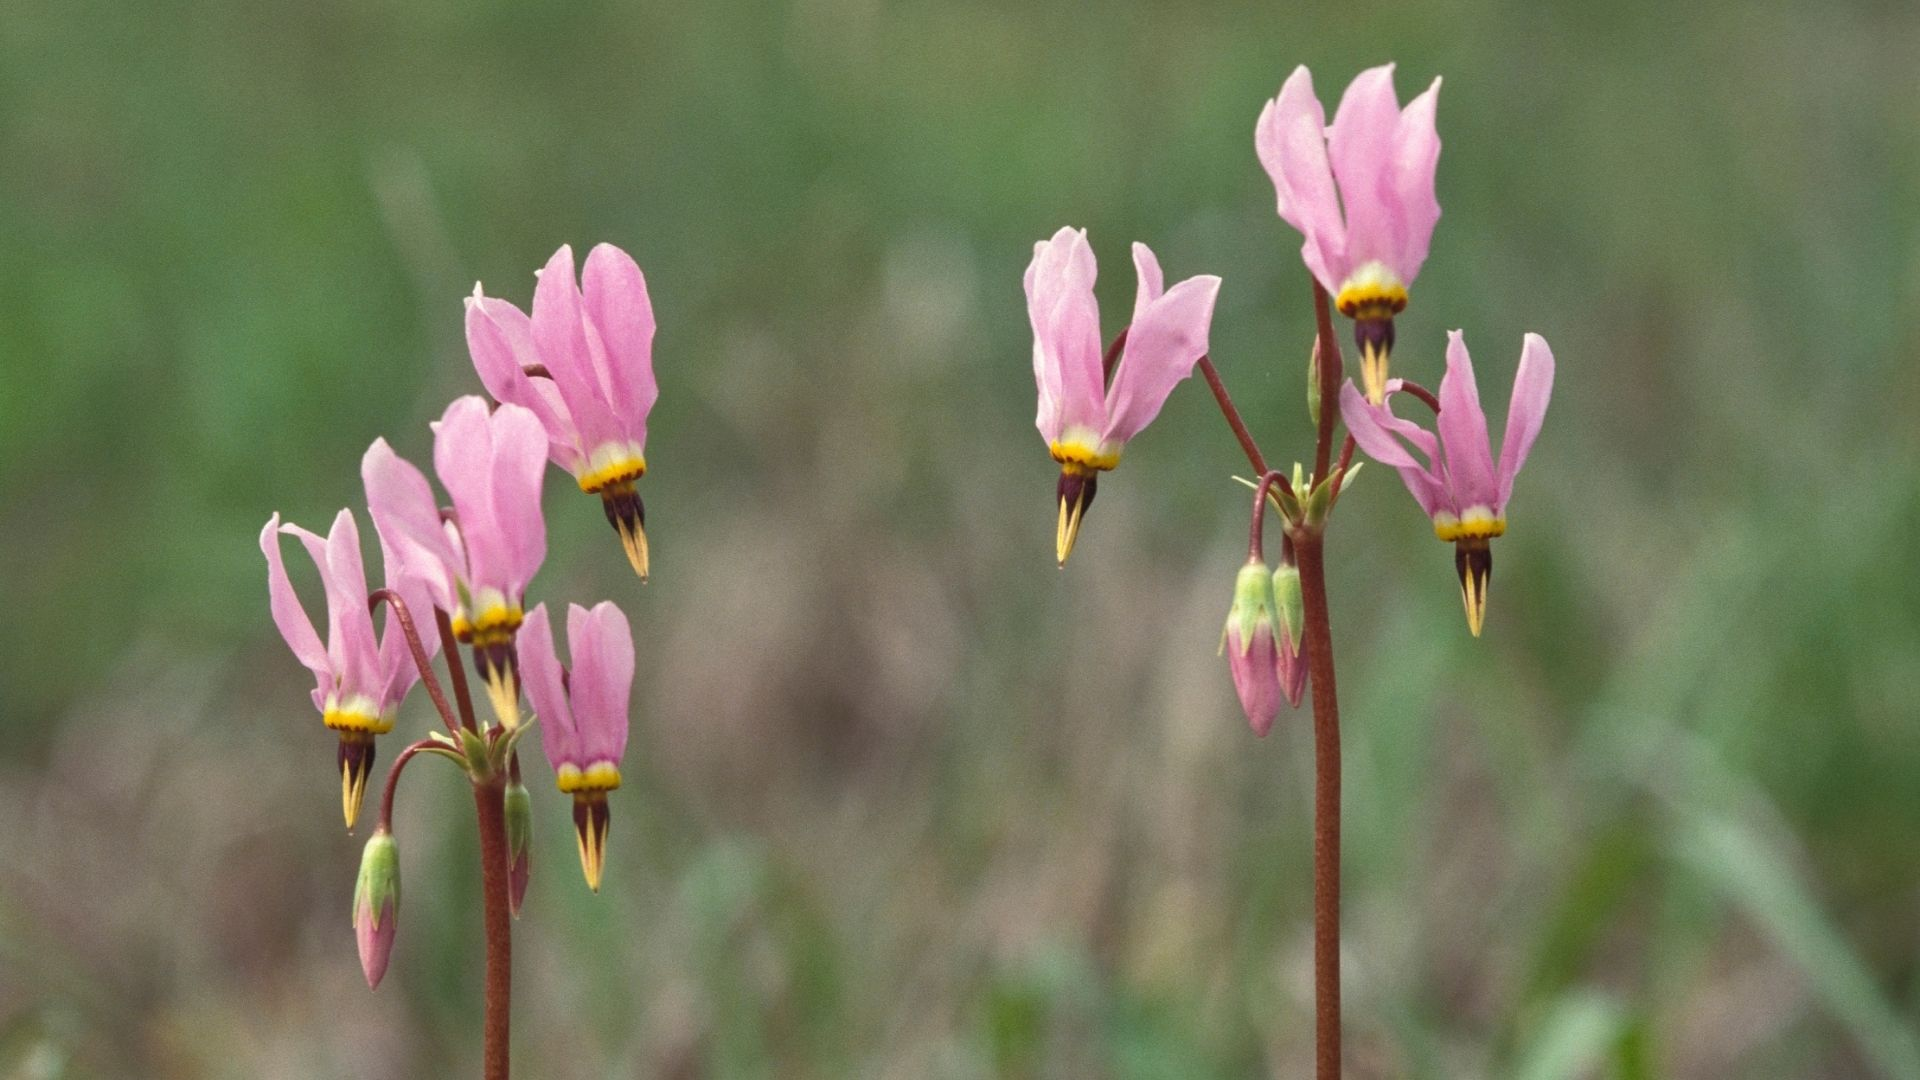 pink shooting star plants